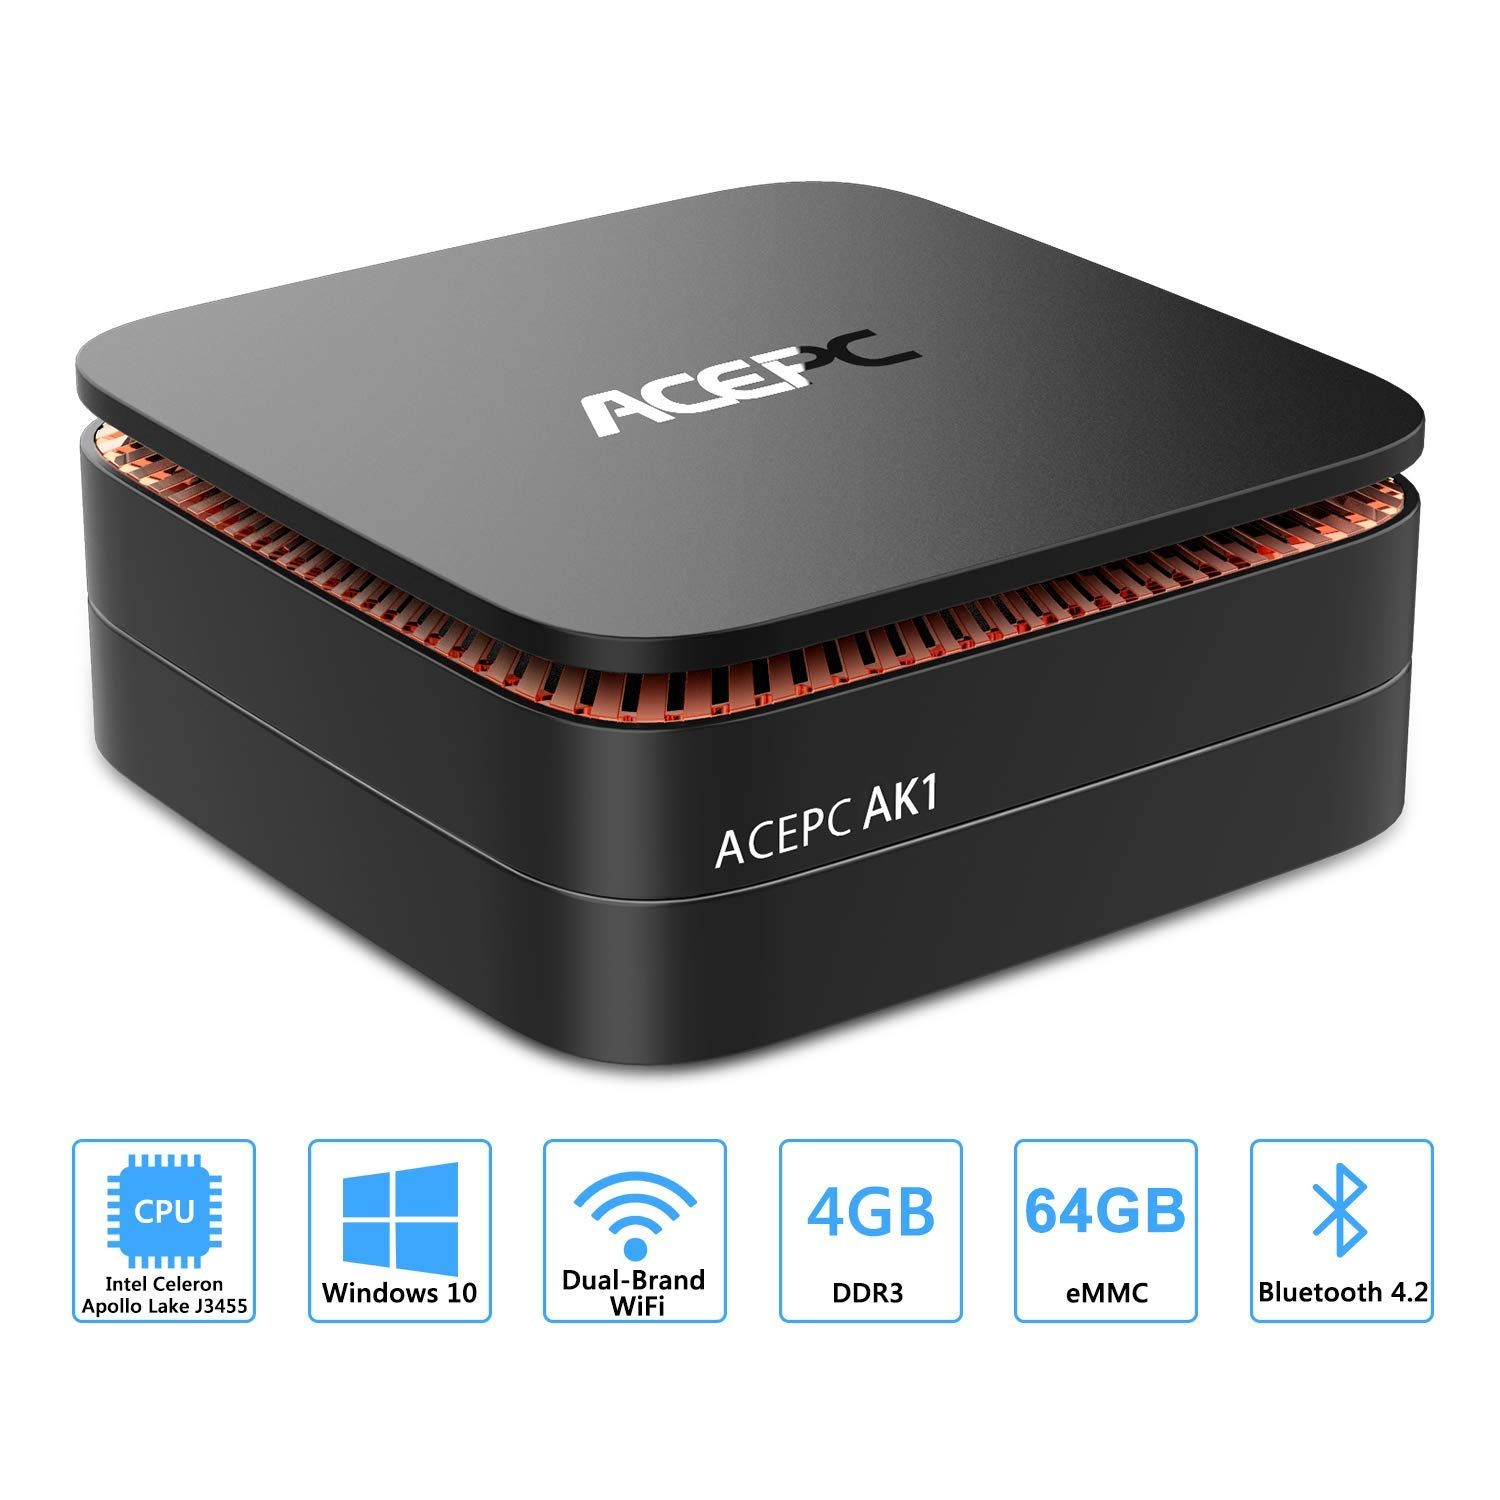 ACEPC AK1 Mini PC,Windows 10(64 bits) Procesador Intel Celeron Apollo Lake J3455(hasta 2,3GHz)Computadora de escritorio[4GB/64GB/Soporte 2.5